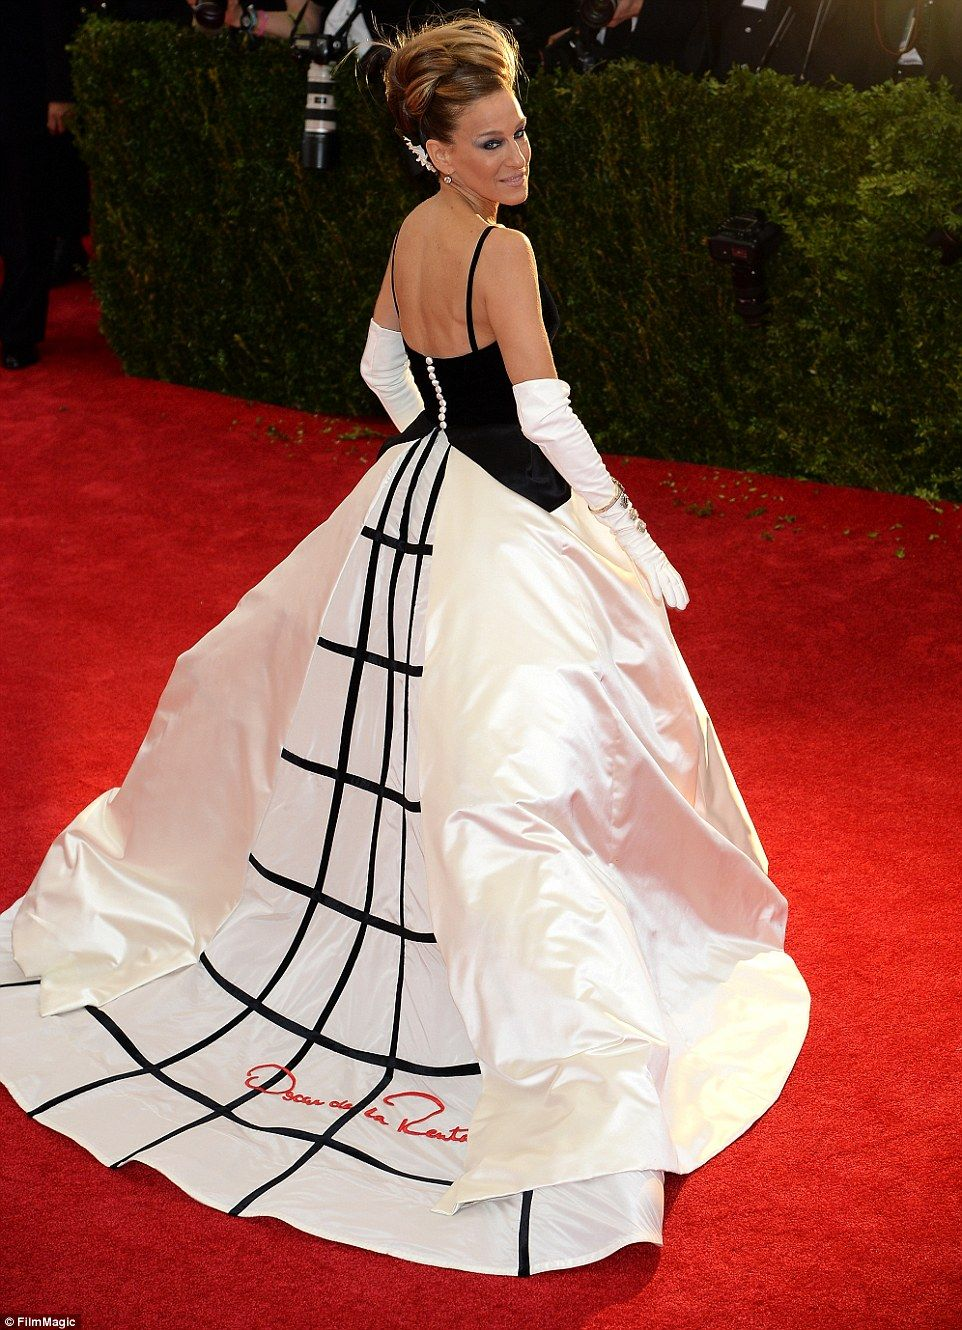 Statement Piece The Theatrical Monotone Dress Worn By Sarah Jessica Parker At Last Year S Met Gala Is One Of De La A More Recent Creations On Display